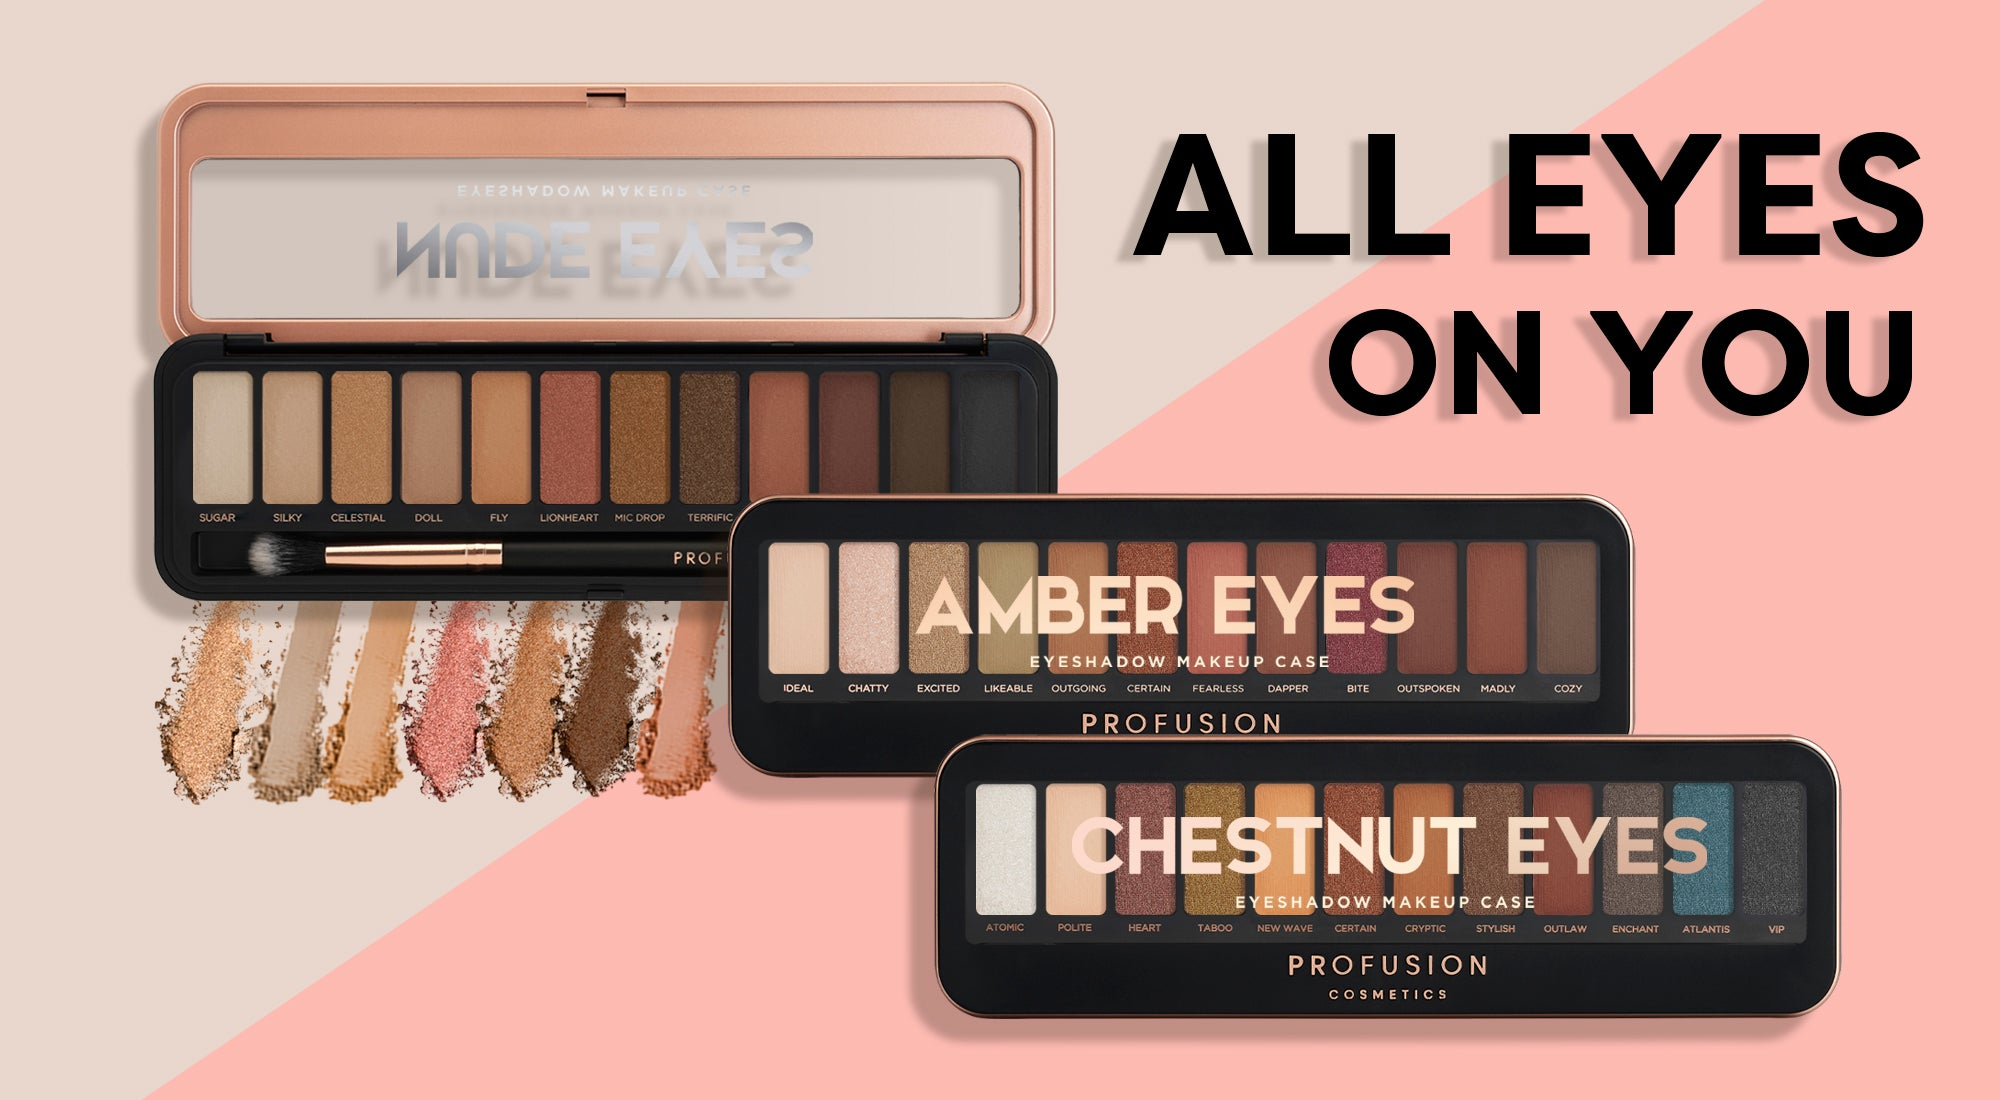 a5afd294eaf3 Profusion Cosmetics - Shop Pro Makeup Palettes At An Affordable Price!